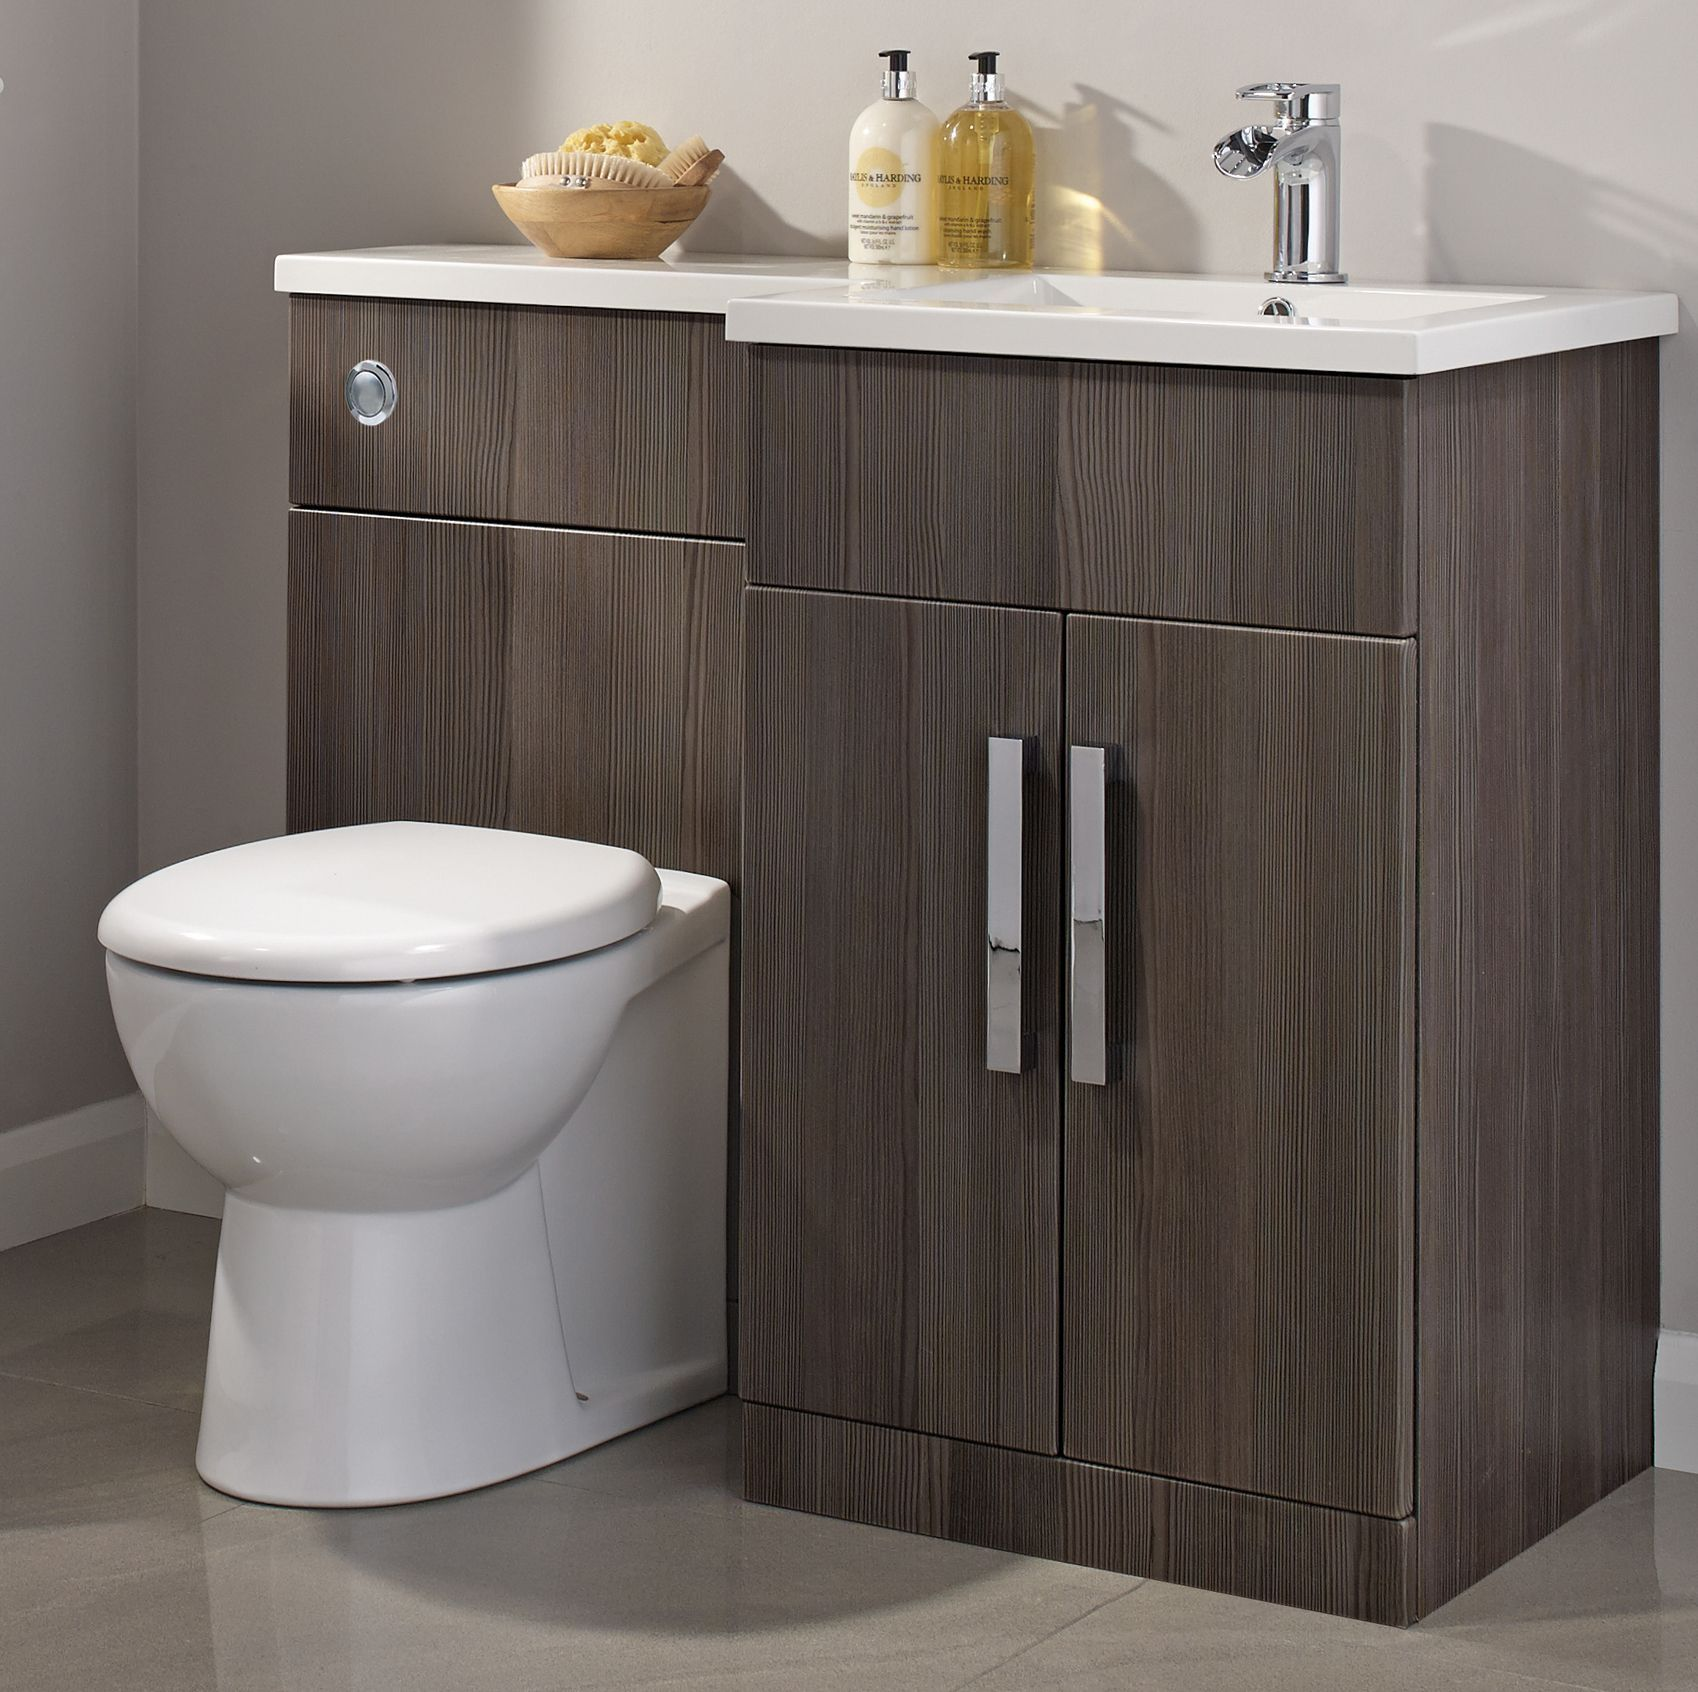 Cooke Lewis Ardesio Bodega Grey Rh Vanity Toilet Pack Rooms Diy At B Q Small Bathroom Cabinets Bathroom Mirror Cabinets